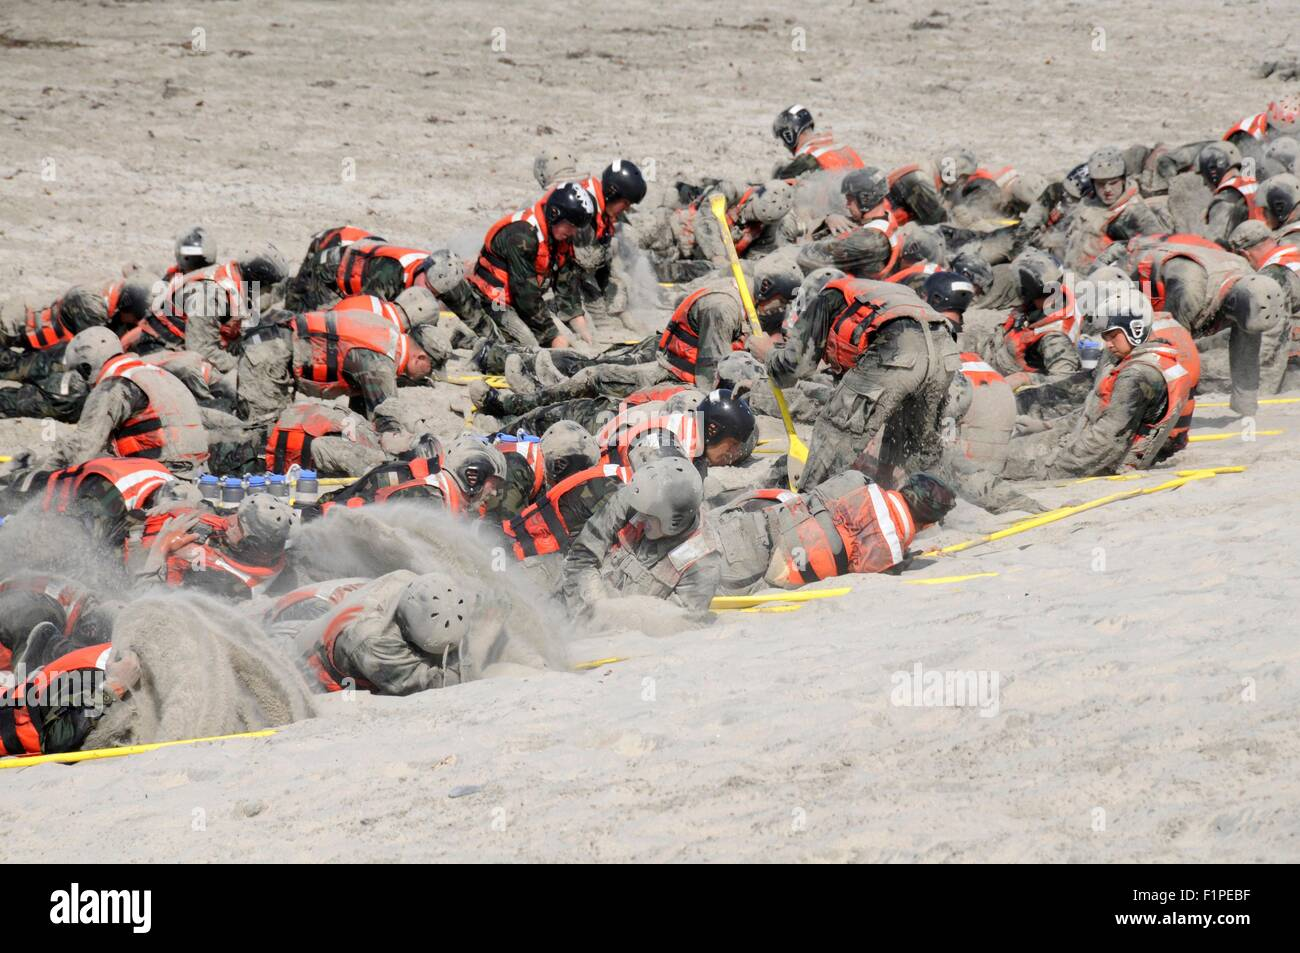 US Navy SEAL candidates cover themselves in sand during surf passage on Naval Amphibious Base Coronado September - Stock Image